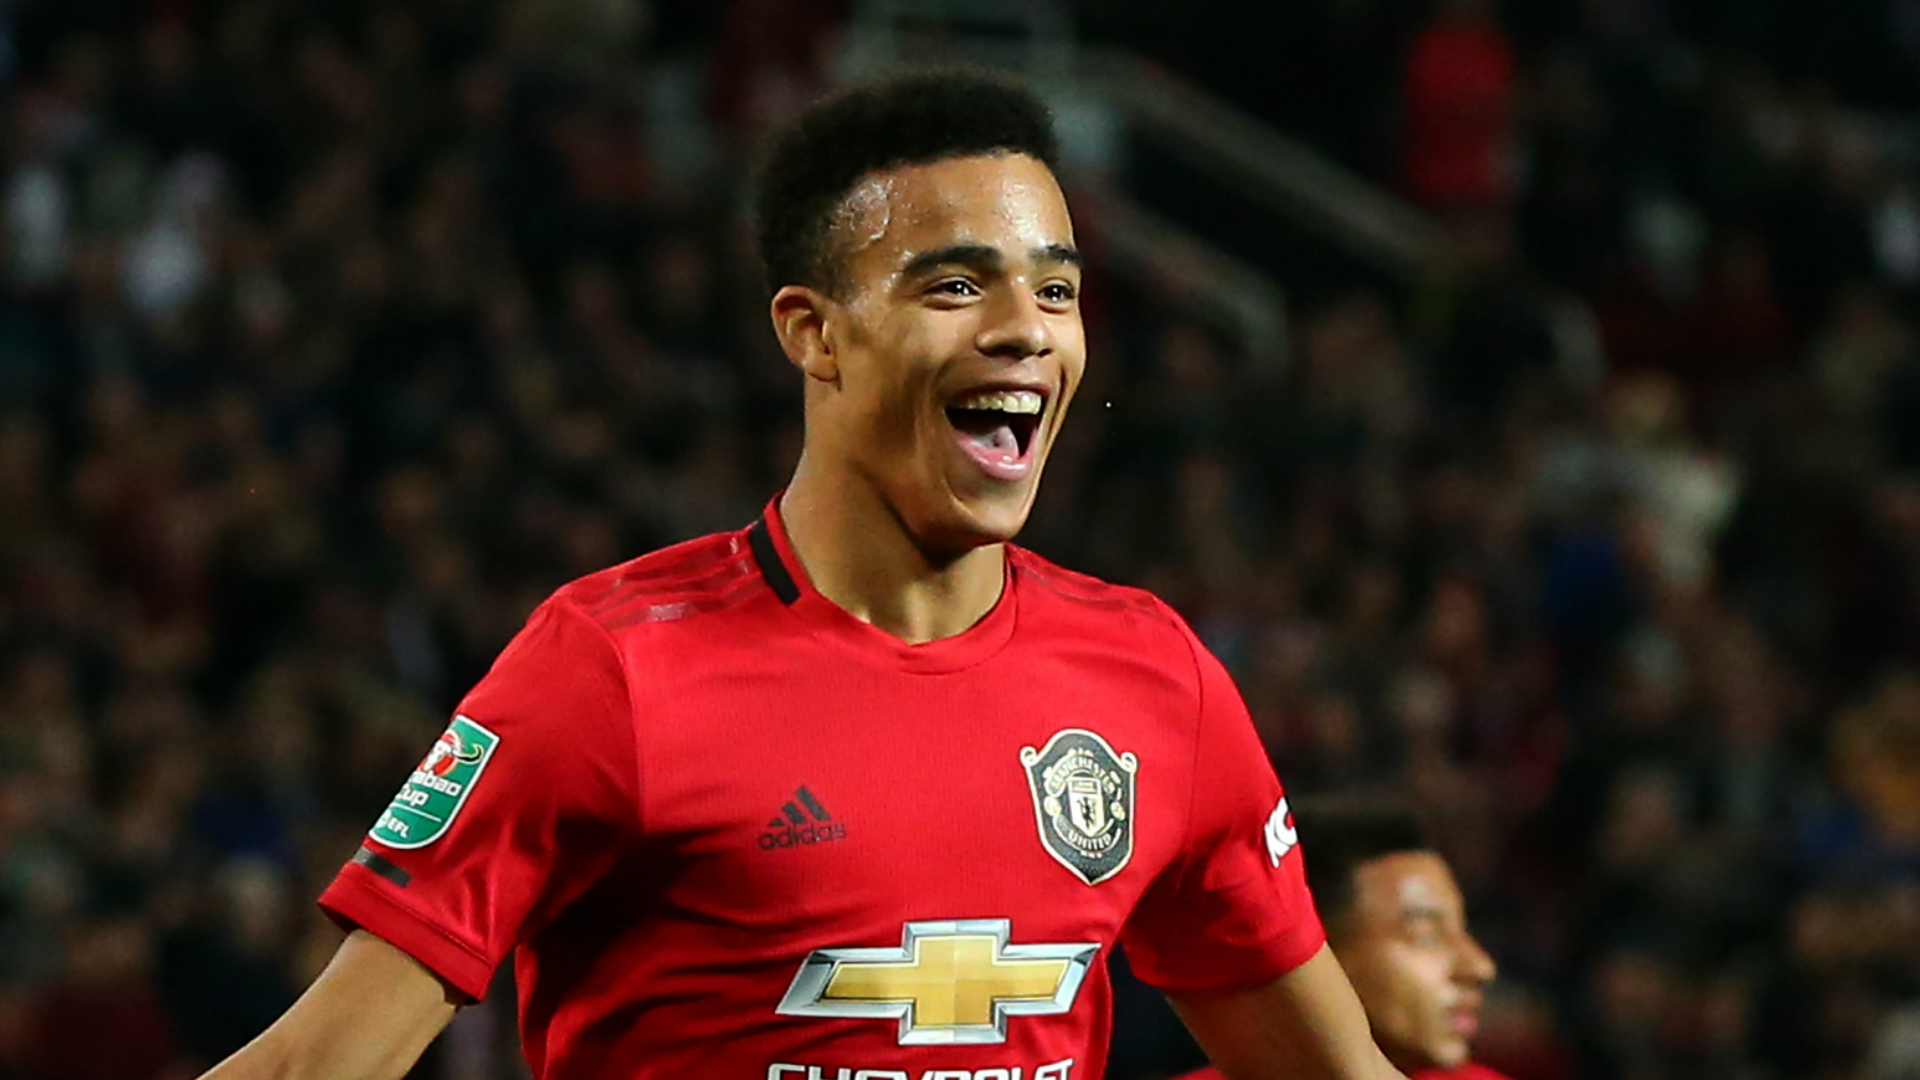 Greenwood replaces injured Martial for Man Utd as Mourinho returns to Old Trafford